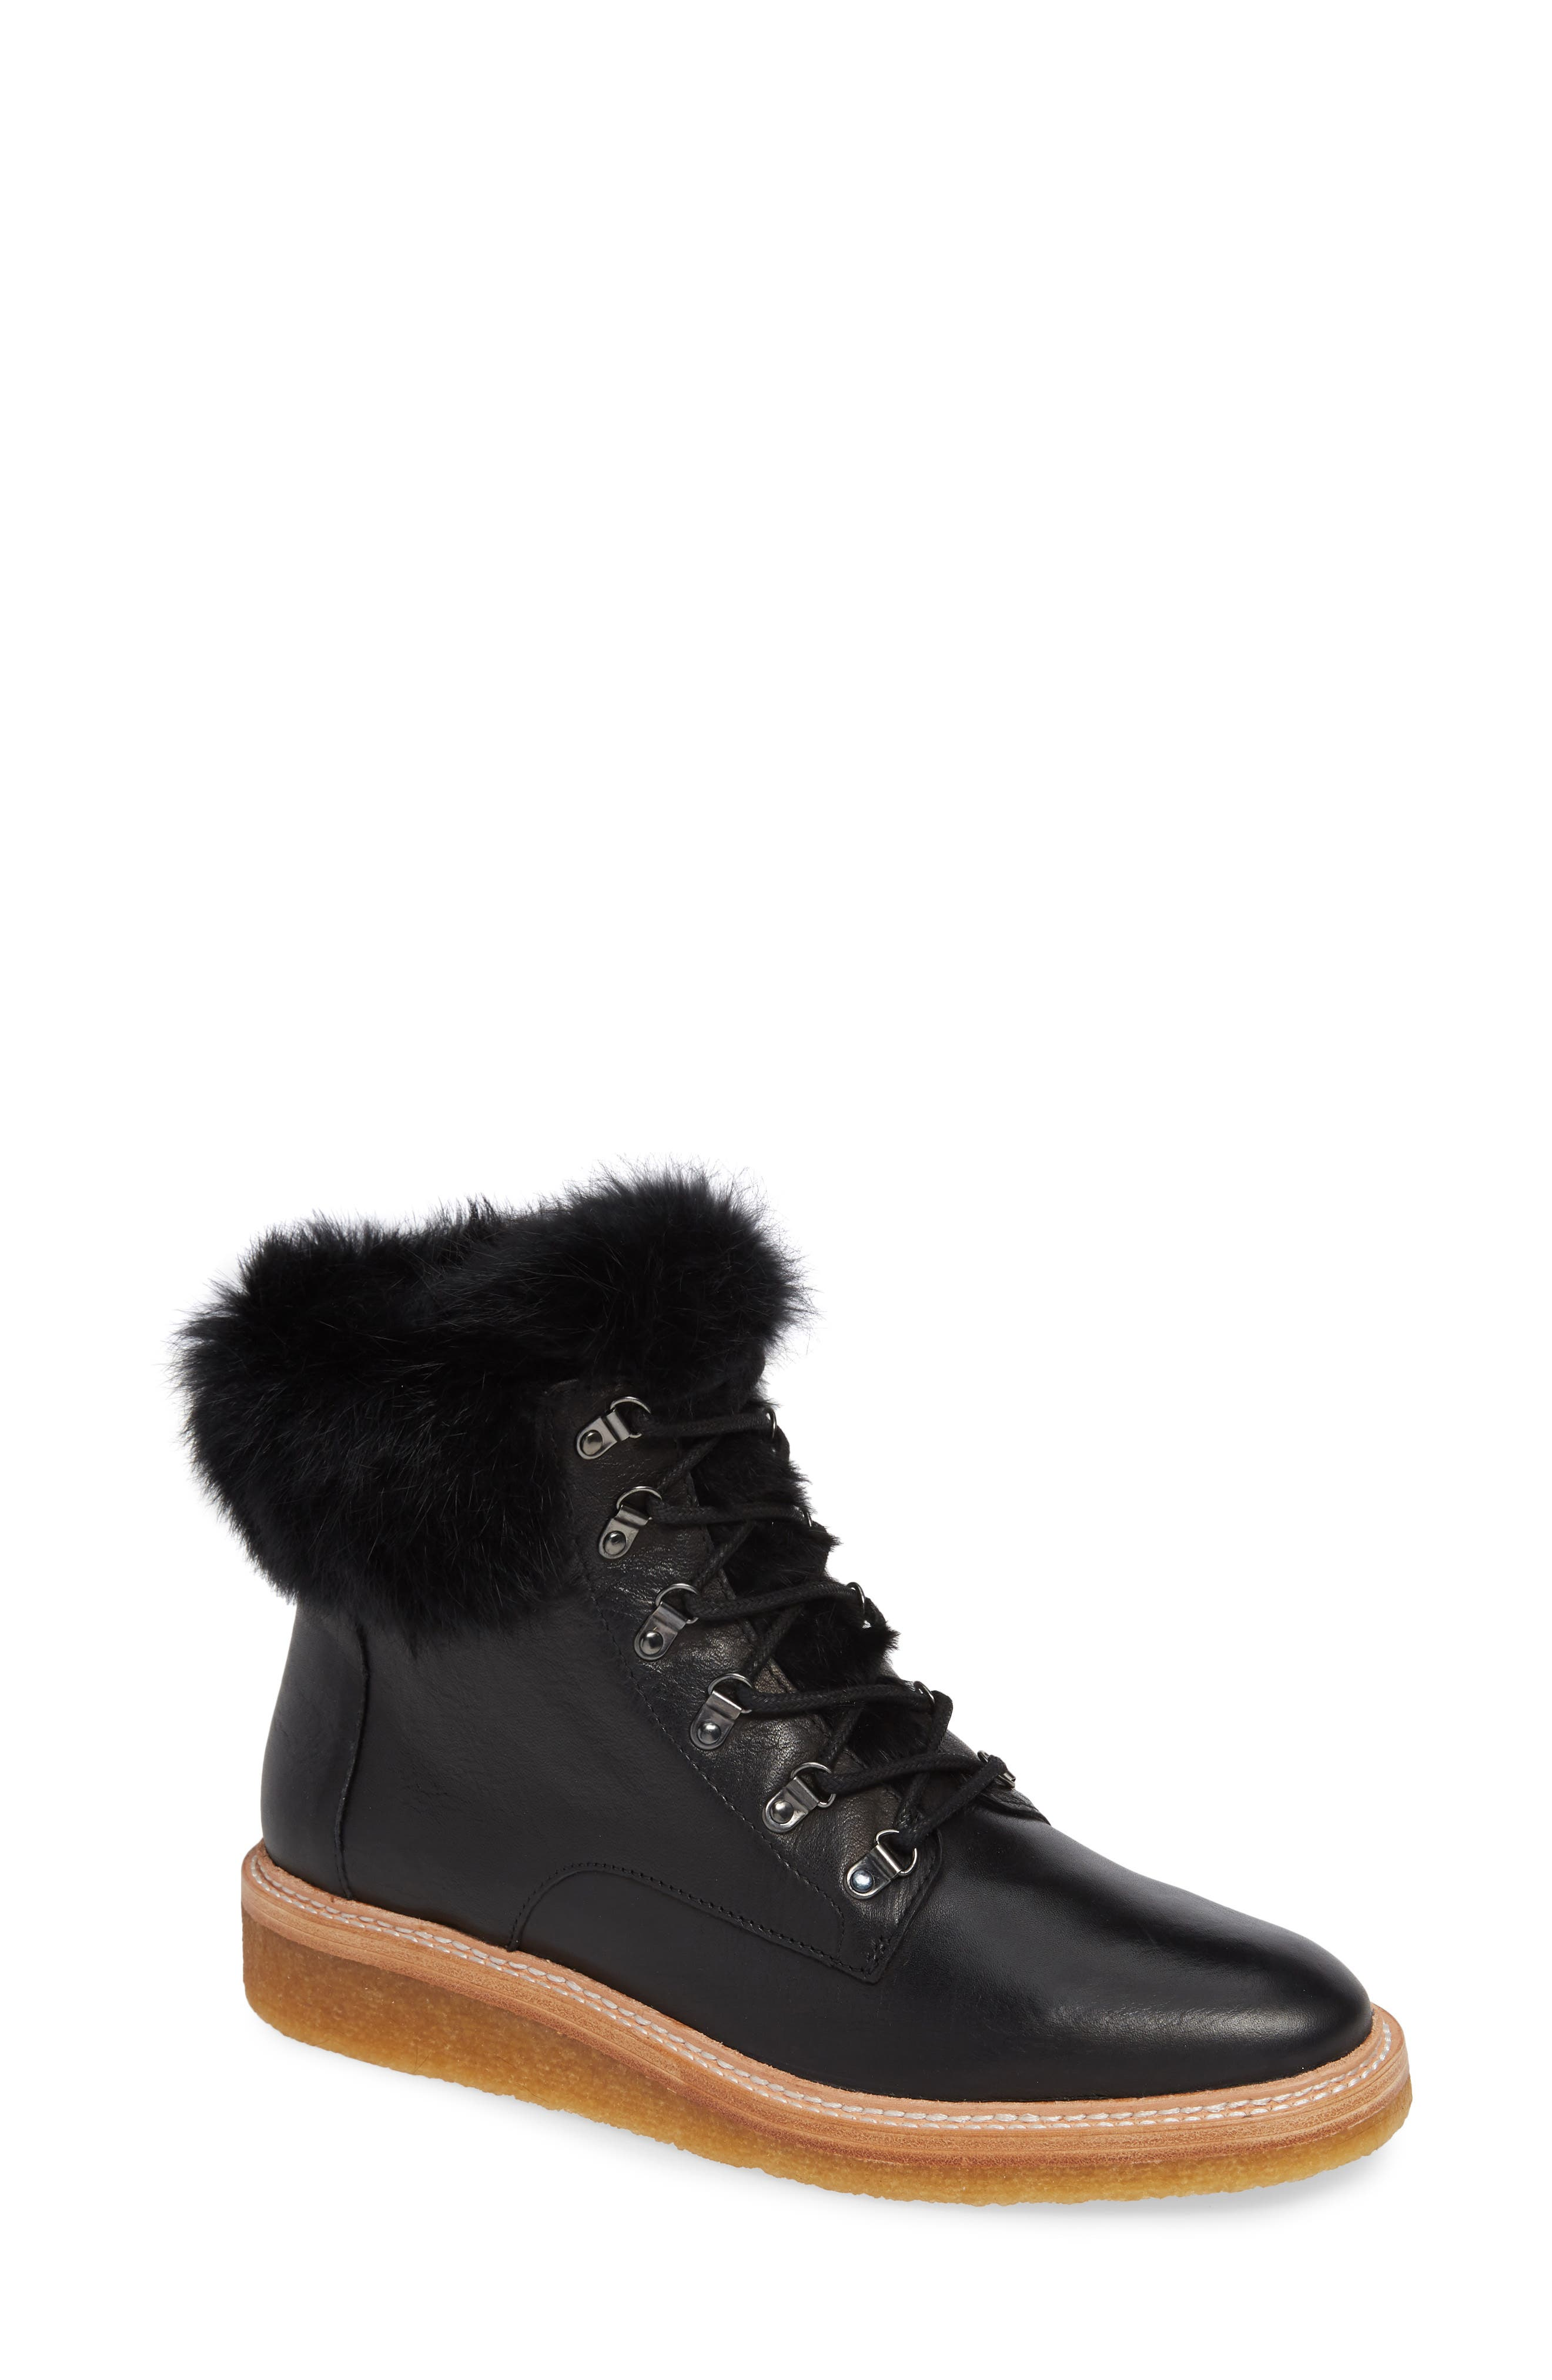 Winter Genuine Rabbit Fur Trim Boot,                             Main thumbnail 1, color,                             BLACK LEATHER